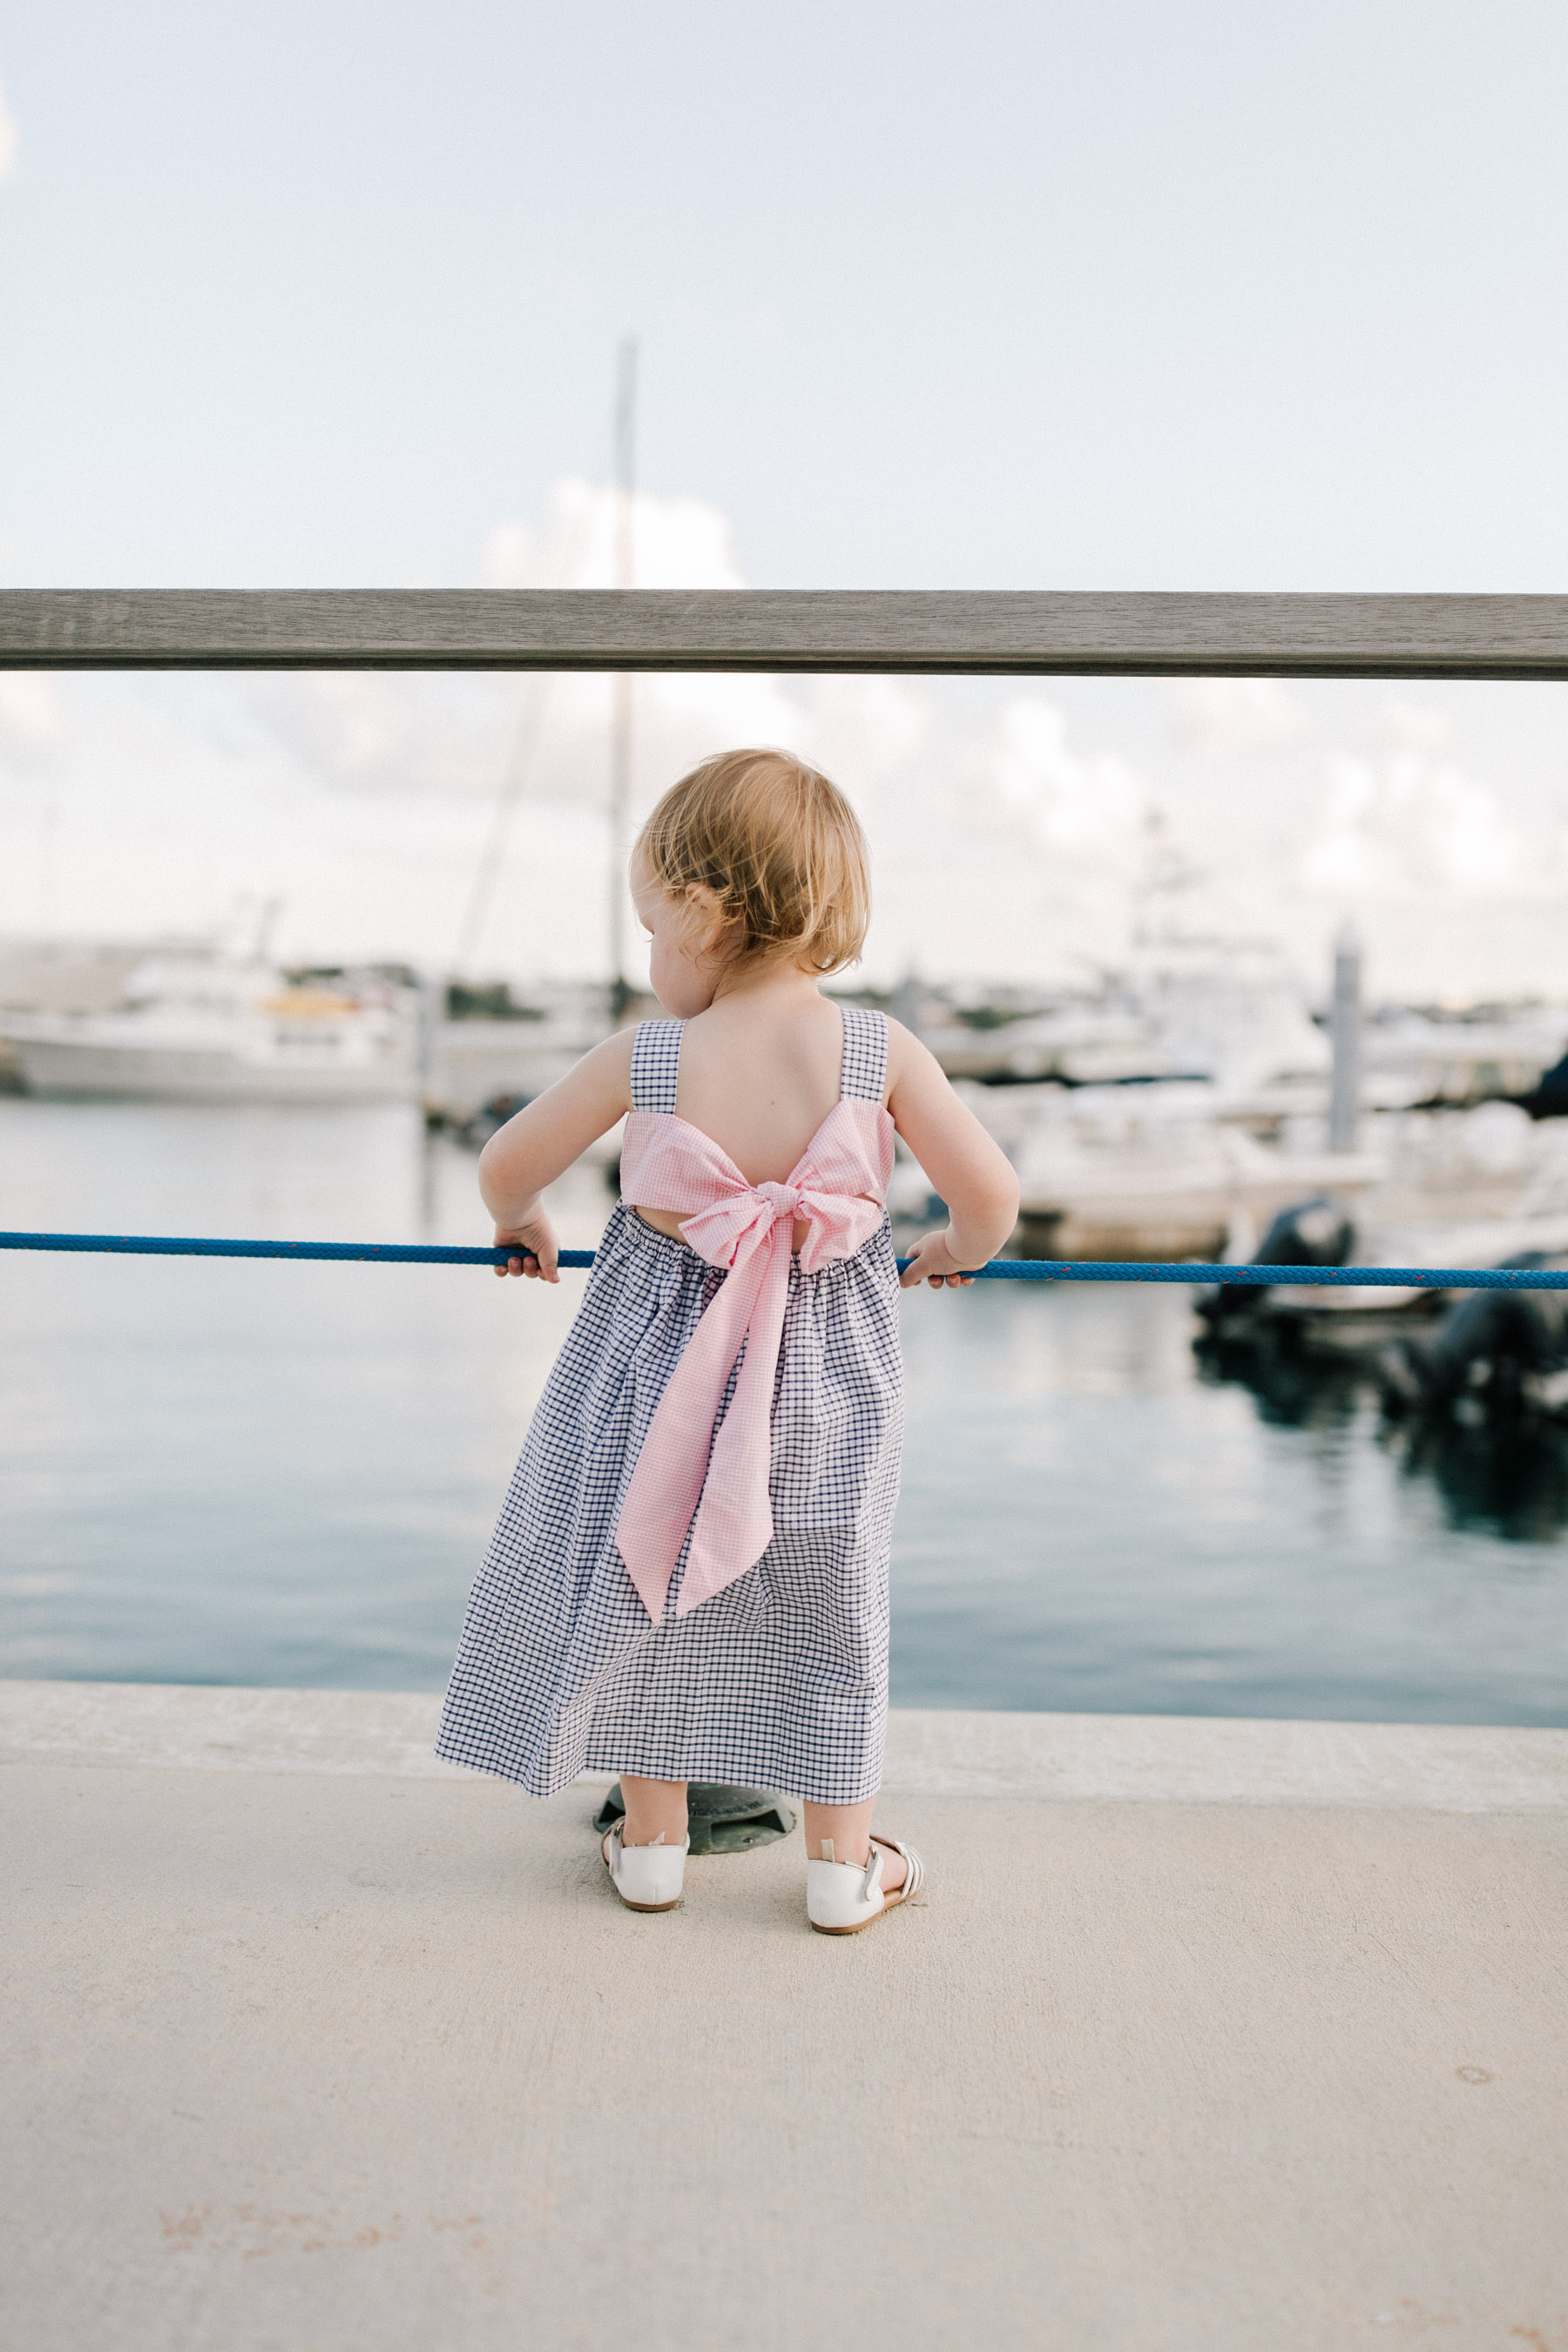 Emma is wearing a Smocked Auctions sailboat dress - Kelly in the City